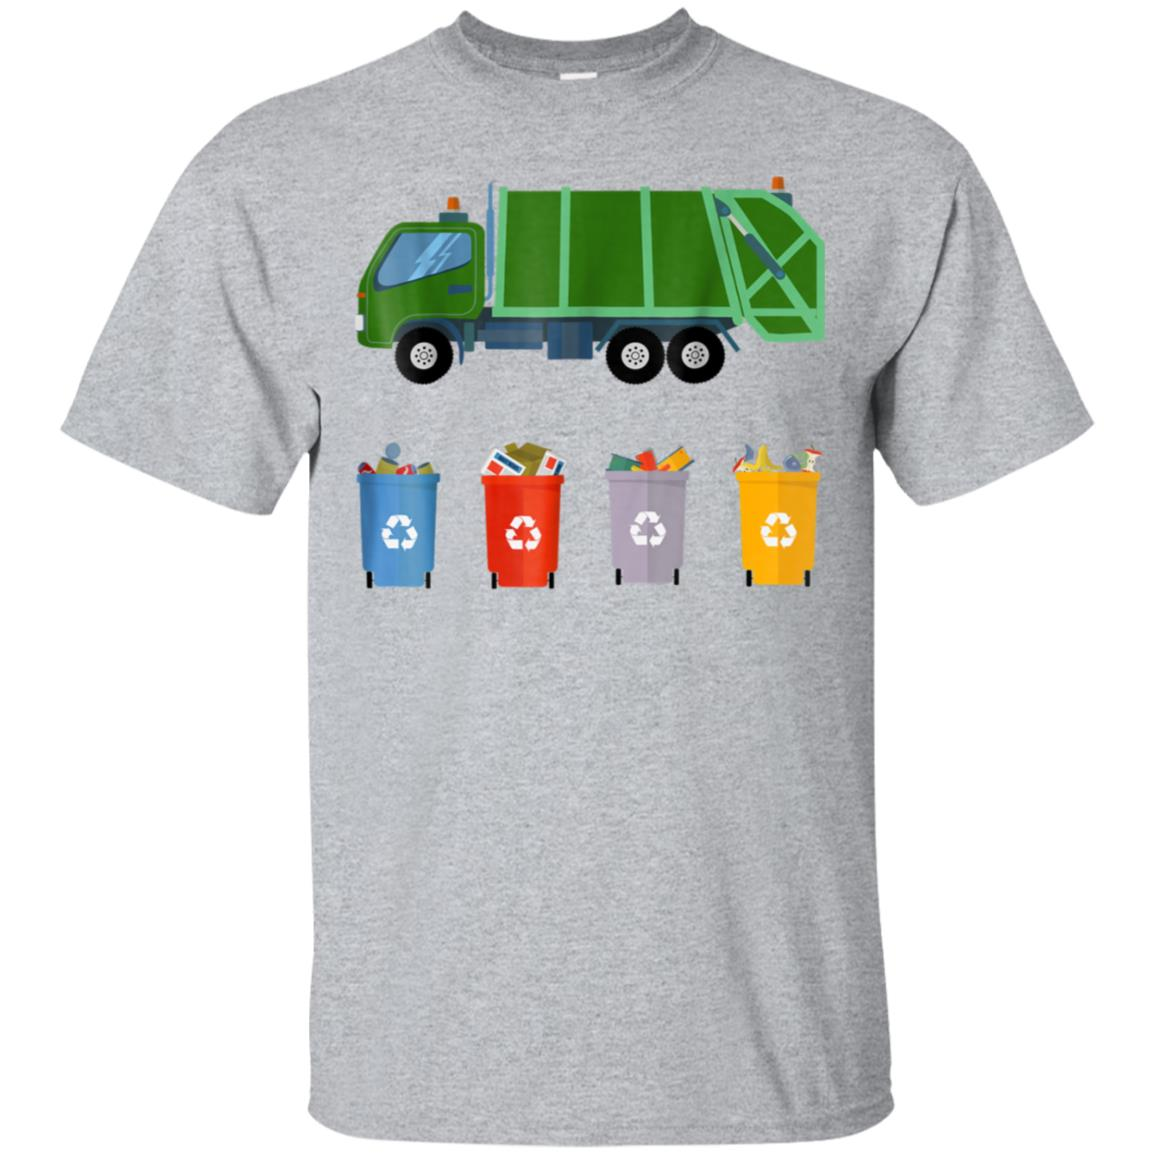 Recycling Trash Truck Shirt Kids Garbage Truck T Shirt 99promocode